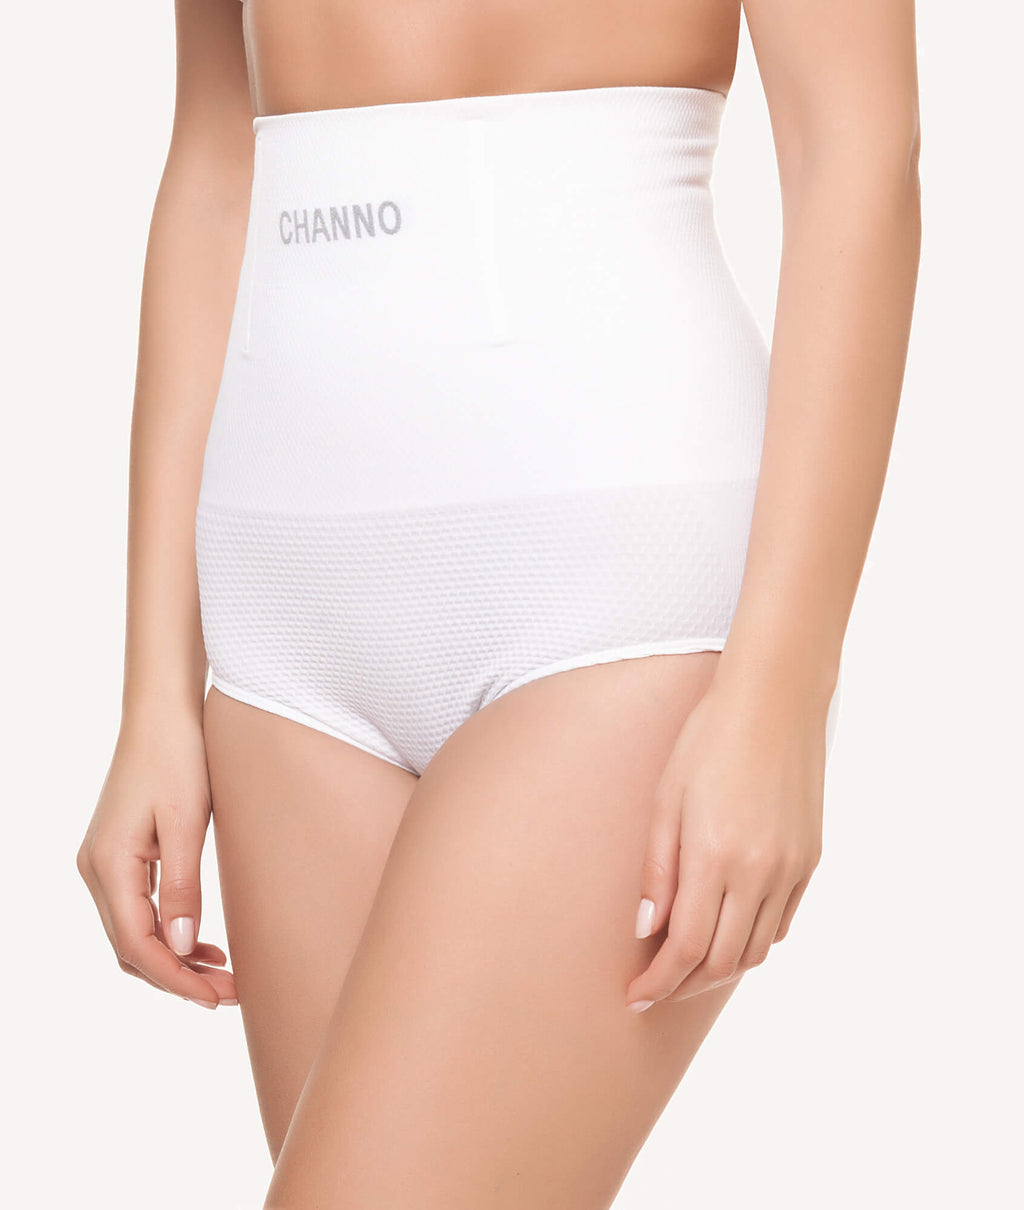 Braga faja reductora con rejilla sin costuras blanco lateral - CHANNO Woman